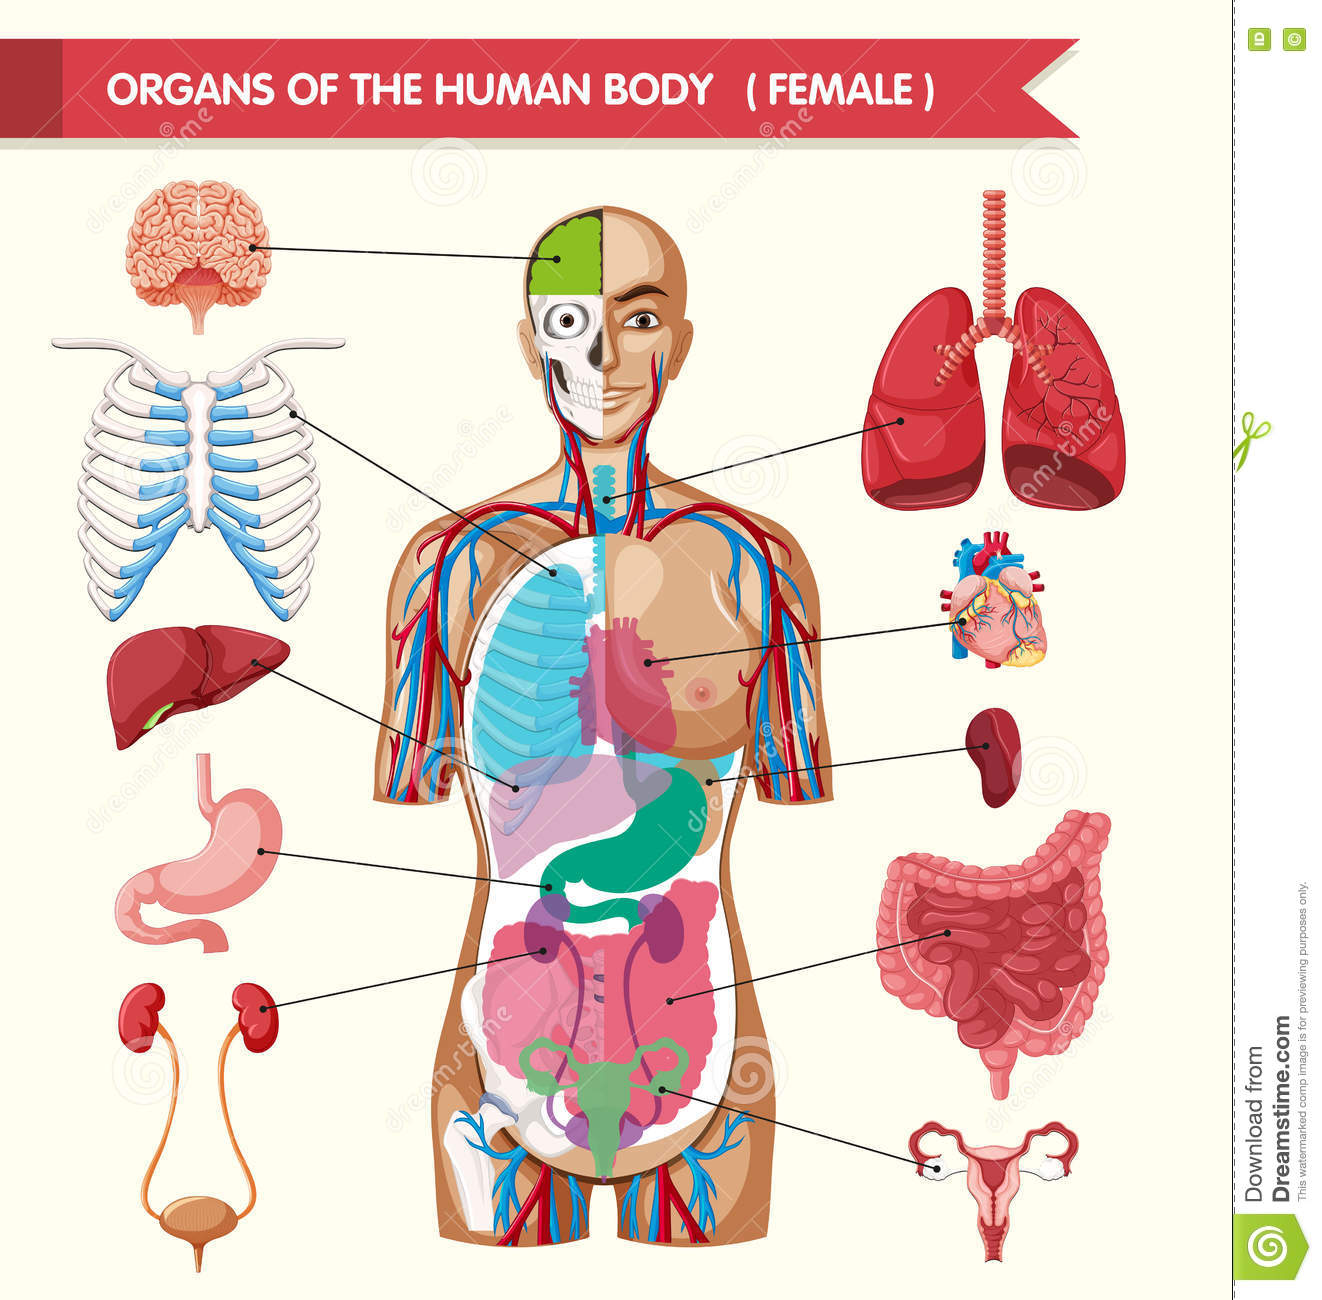 Organs Of The Human Body Diagram Stock Vector Illustration Of